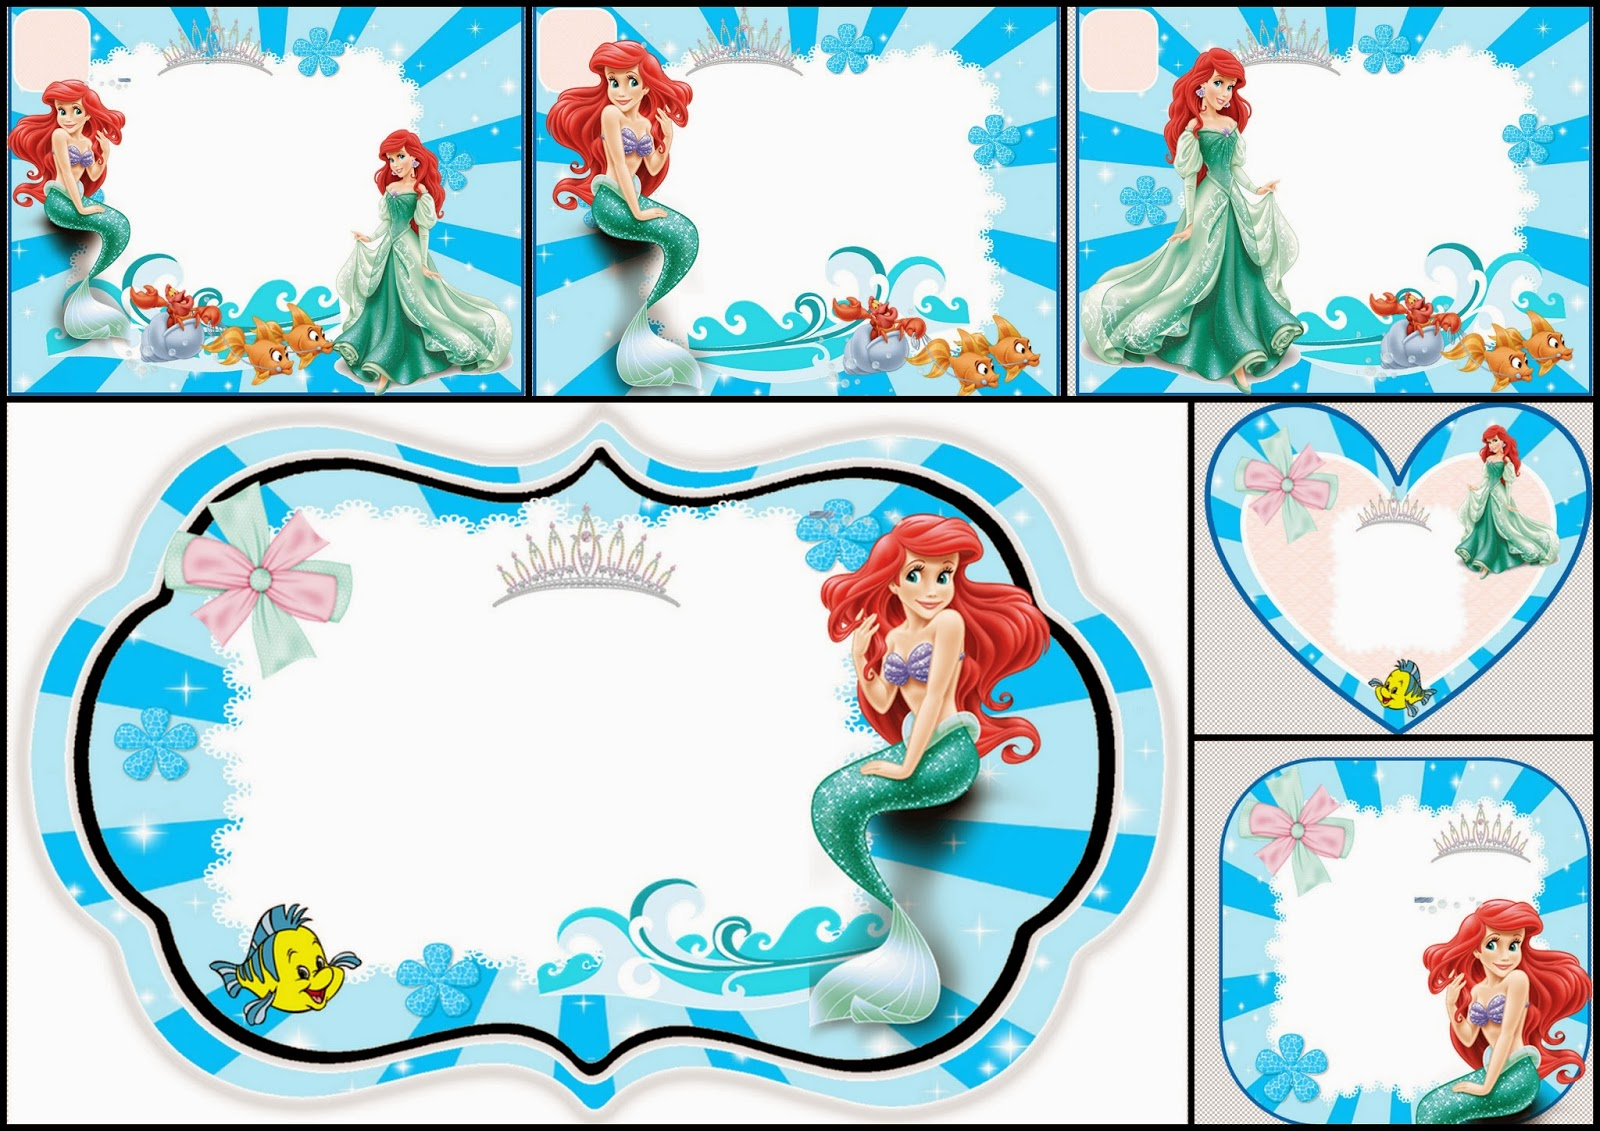 The Little Mermaid Free Printable Invitations Cards Or